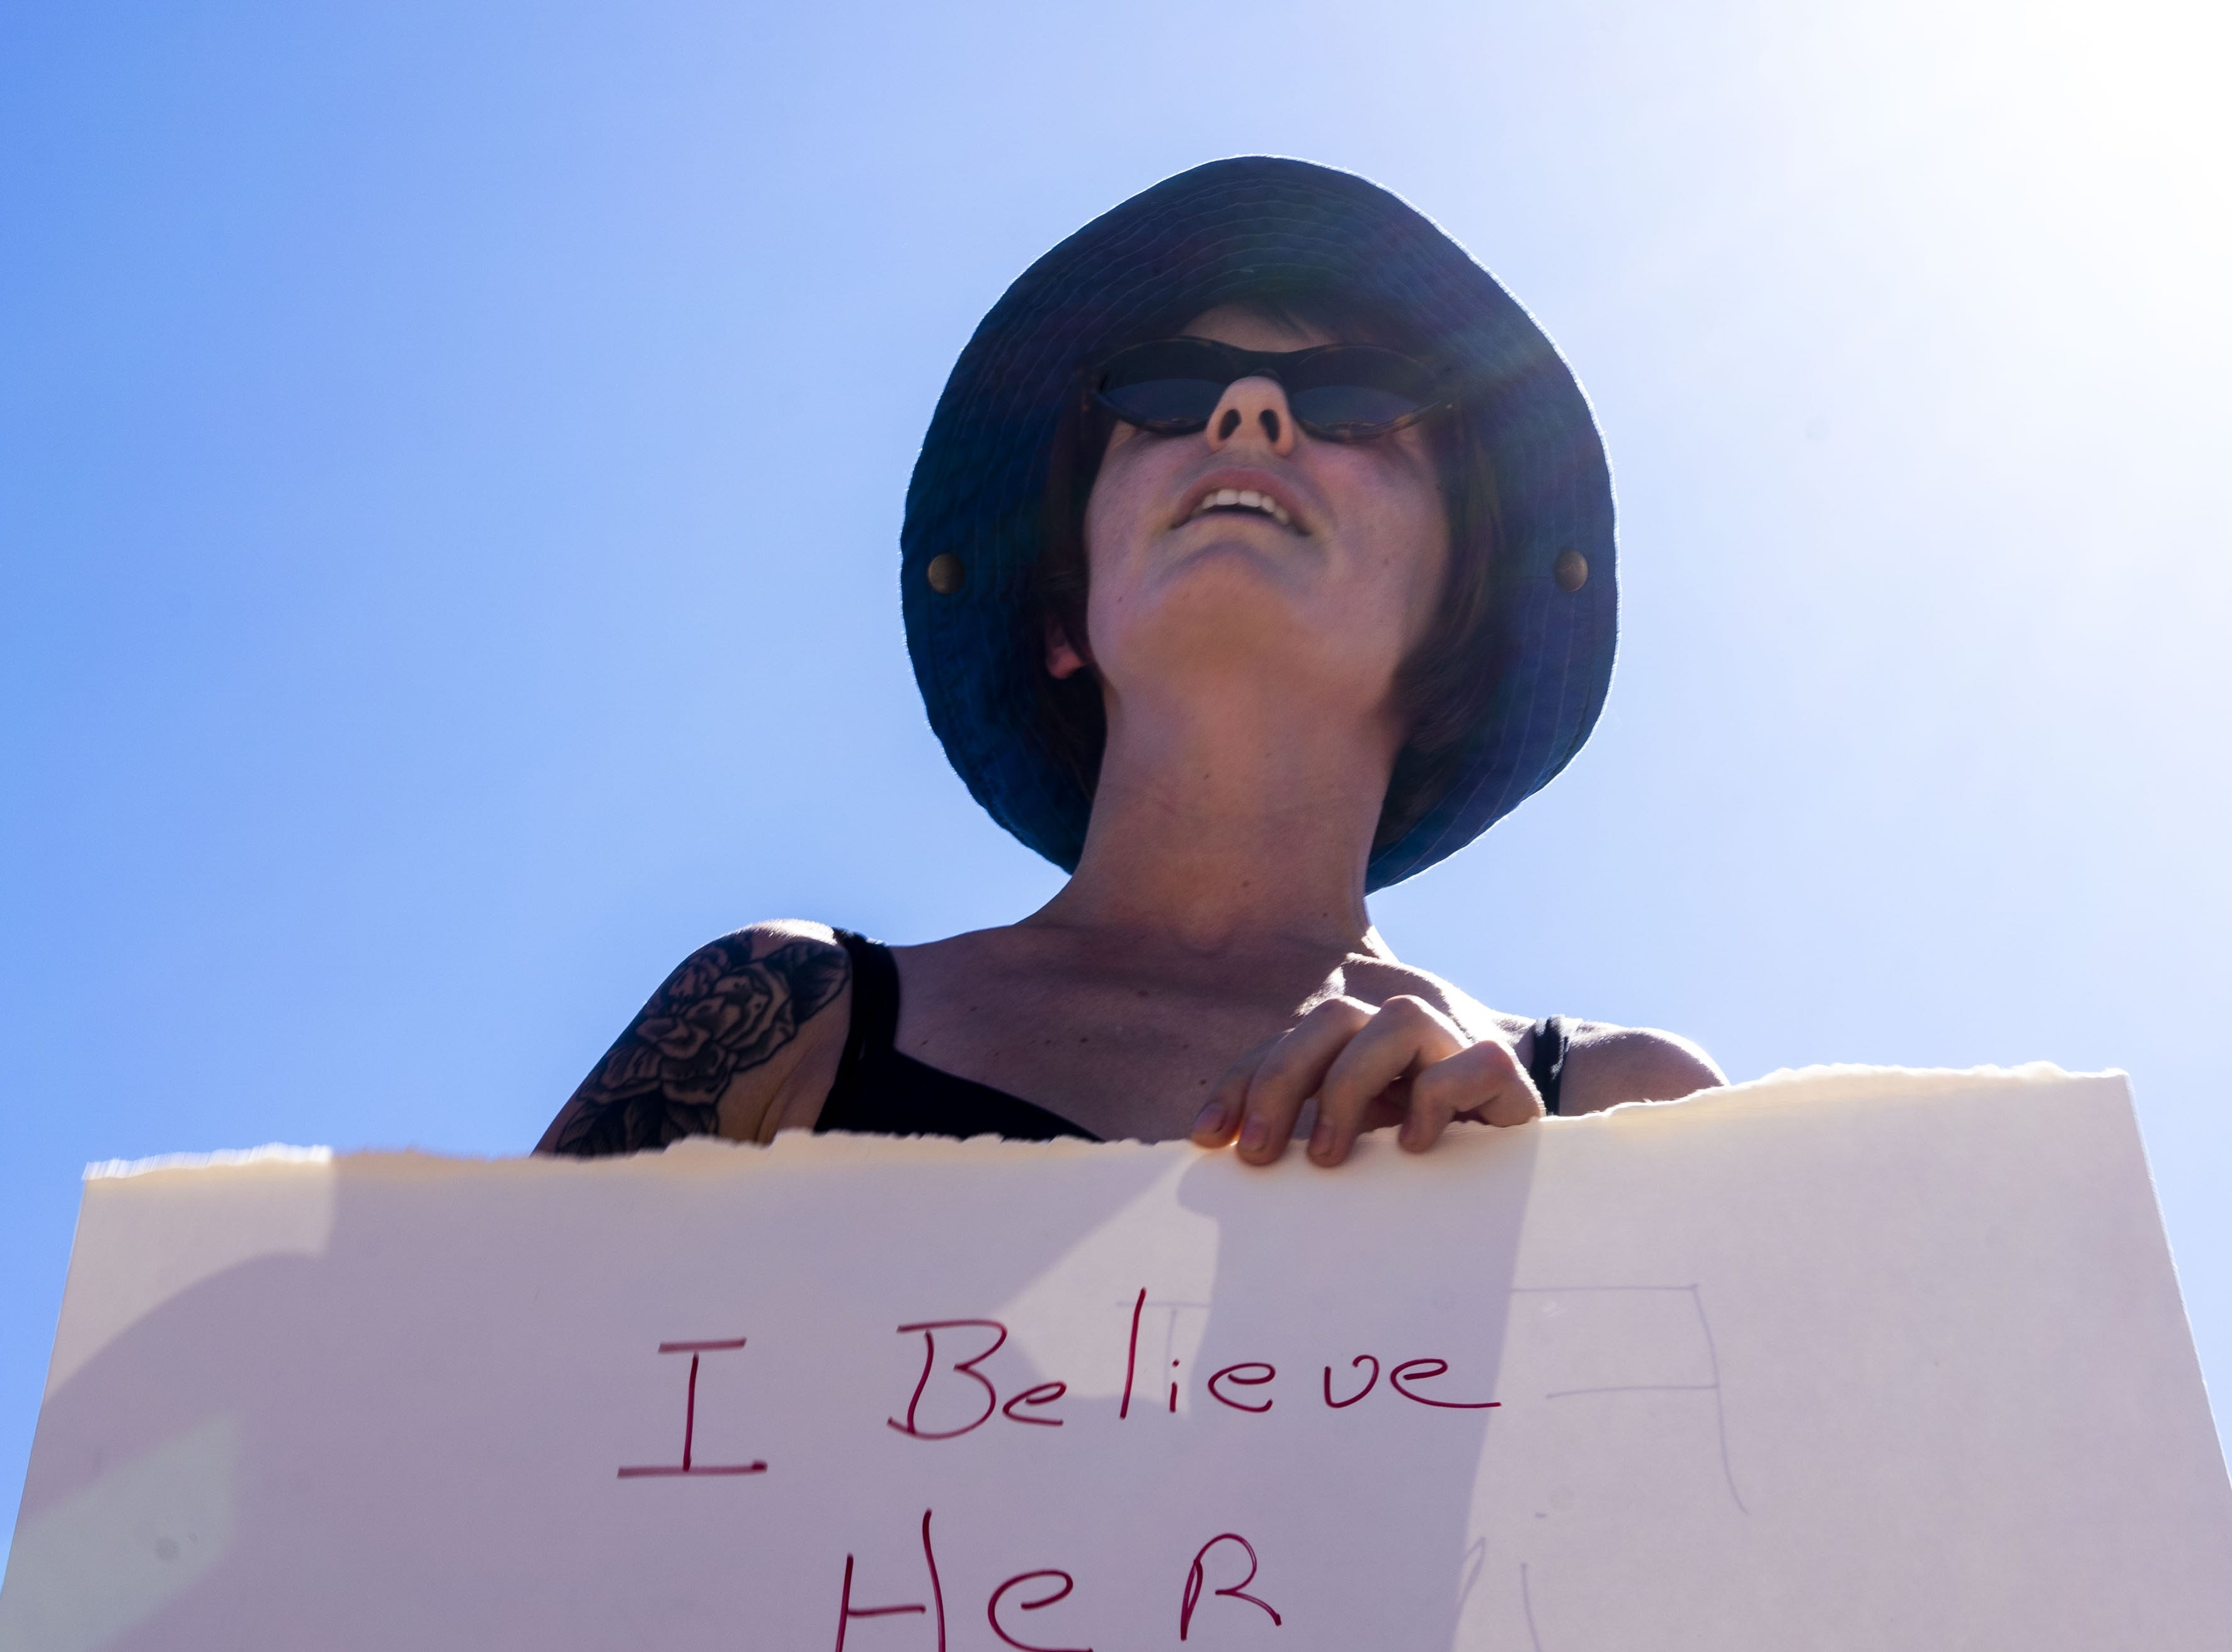 Tauni Malmgren protests Sept. 28, 2018, outside of Jeff Flake's office in Phoenix after he said he wouldn't support a U.S. Senate floor vote for Judge Brett Kavanaugh's Supreme Court confirmation without first allowing an FBI investigation into sexual harassment accusations against Kavanaugh.